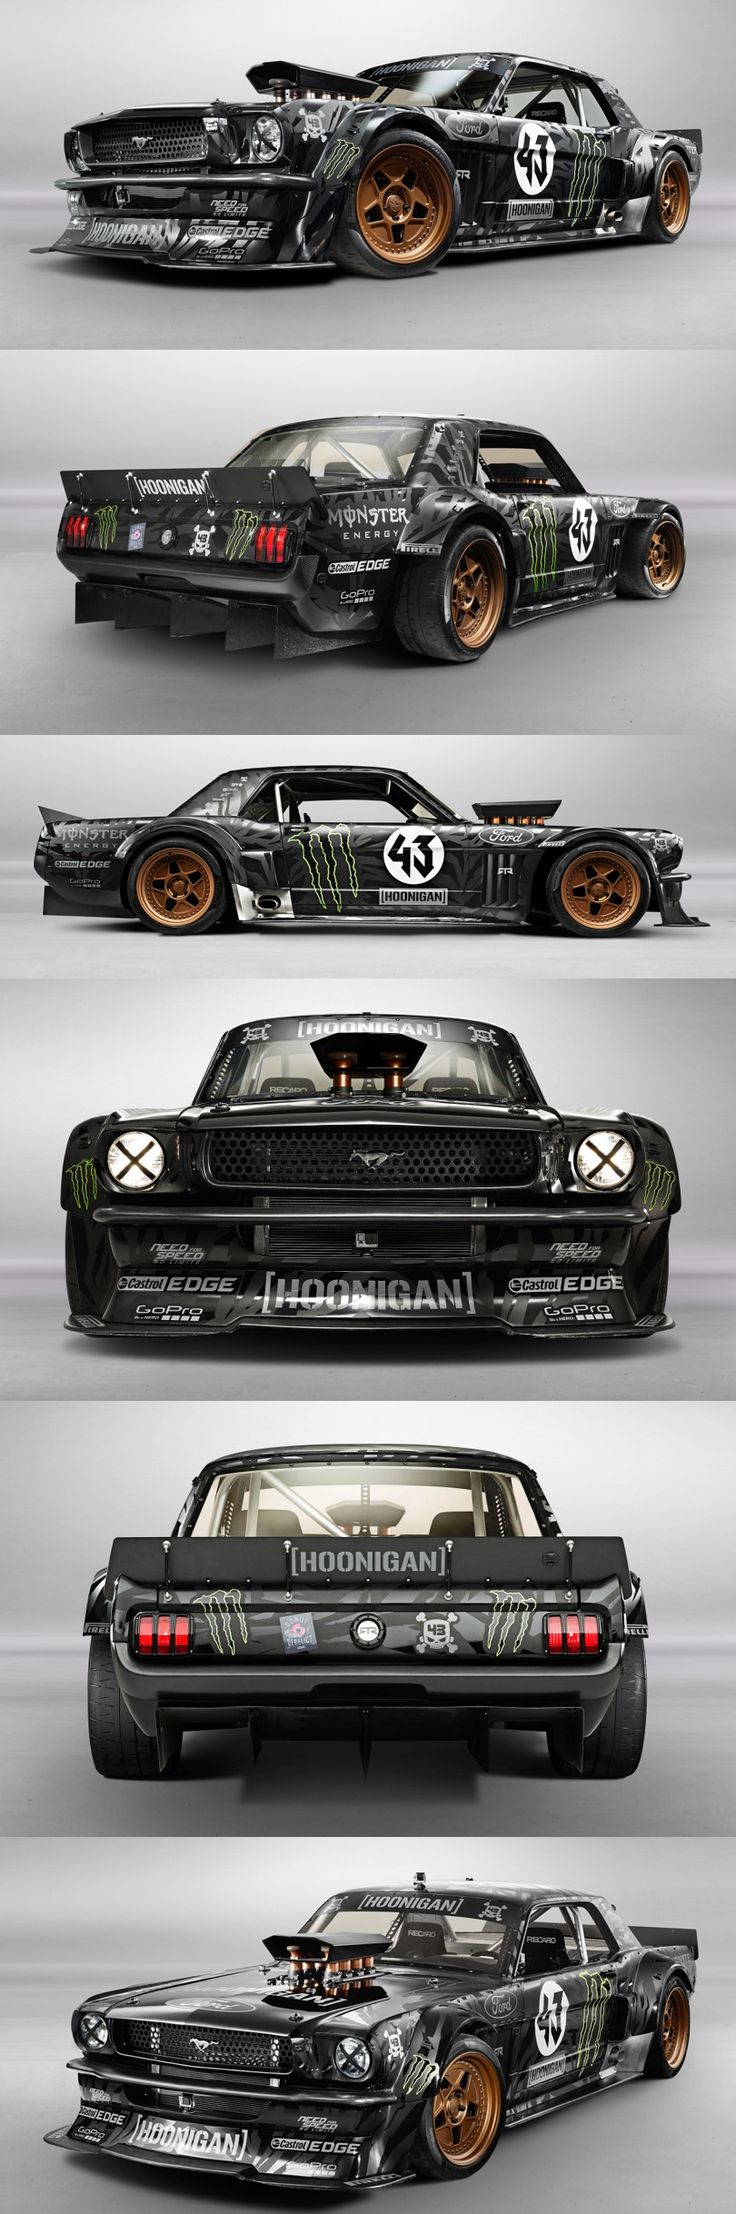 Ken Block's 'Hoonicorn' RTR - A 1965 Ford Mustang with a 410 cubic-inch, 845 horsepower Roush Yates Ford V8, all-wheel drive, and a six-speed manual gearbox.